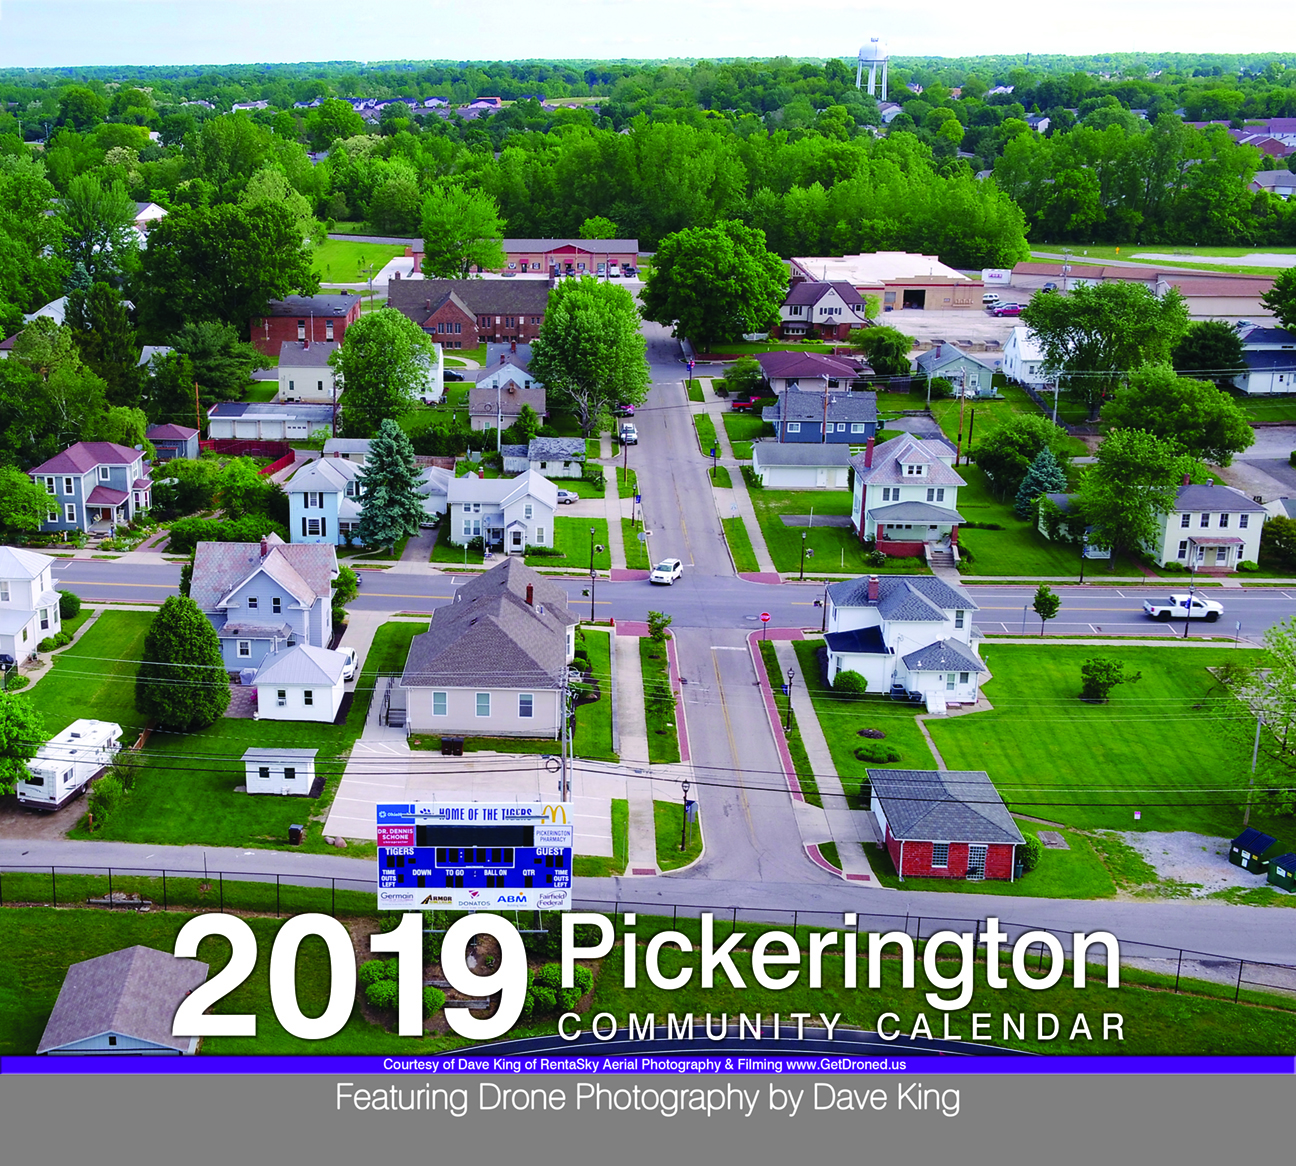 Pickerington Community Calendar